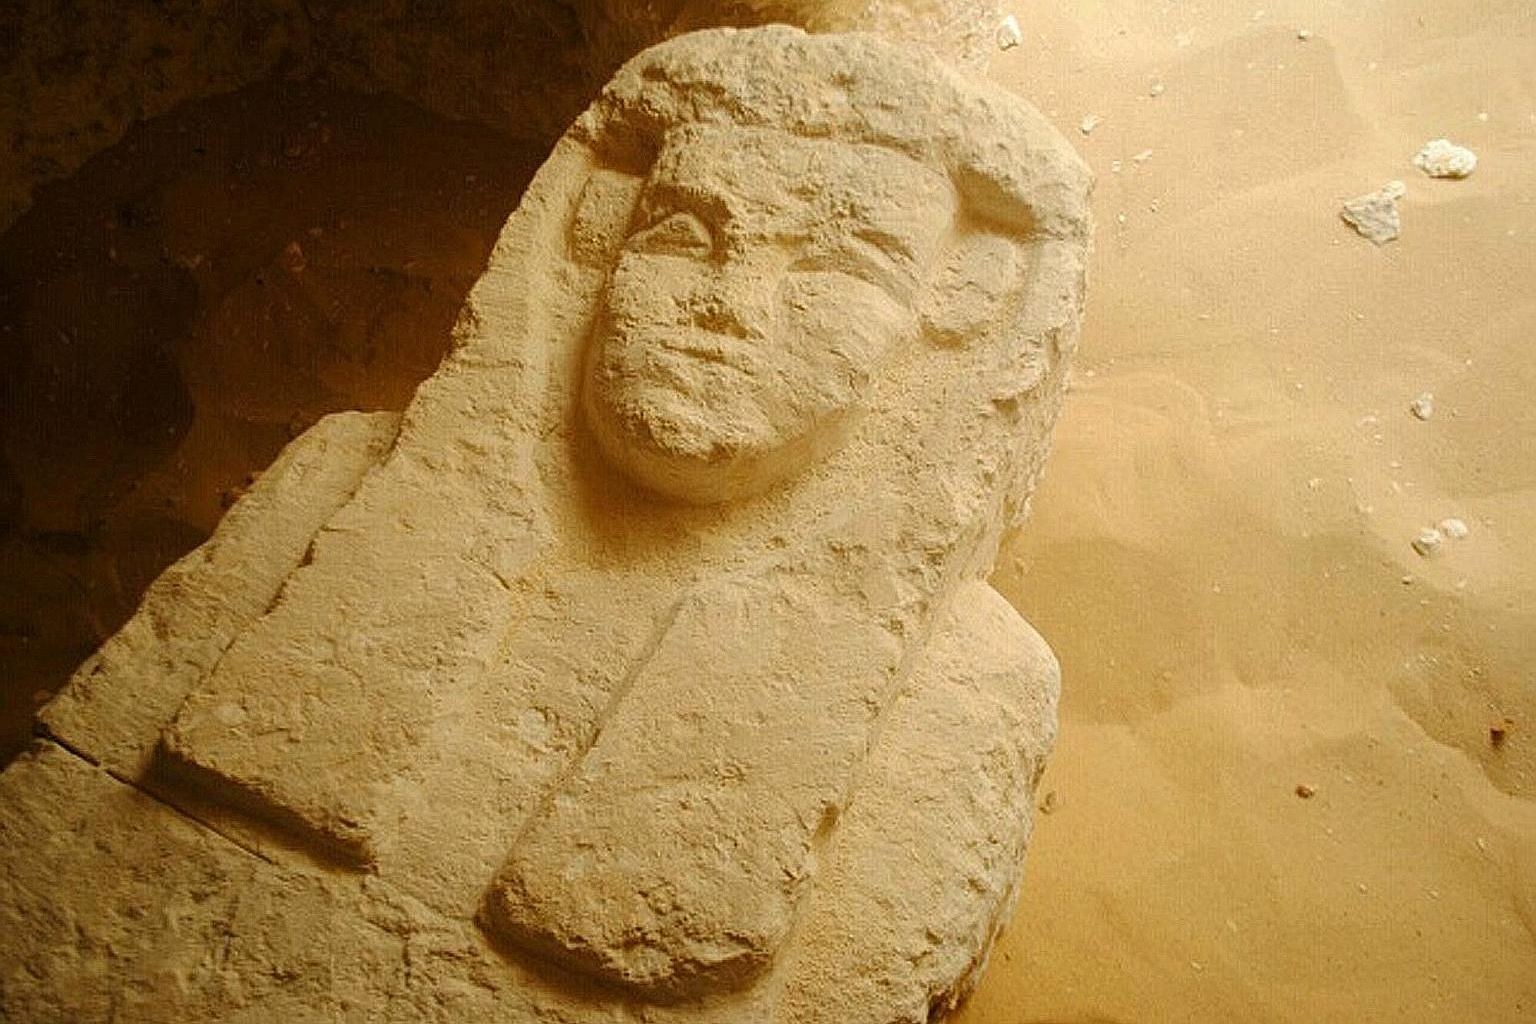 One of the sarcophagi that was found in a cemetery south of Cairo dating back about 2,000 years. Three tombs were found by archaeologists.